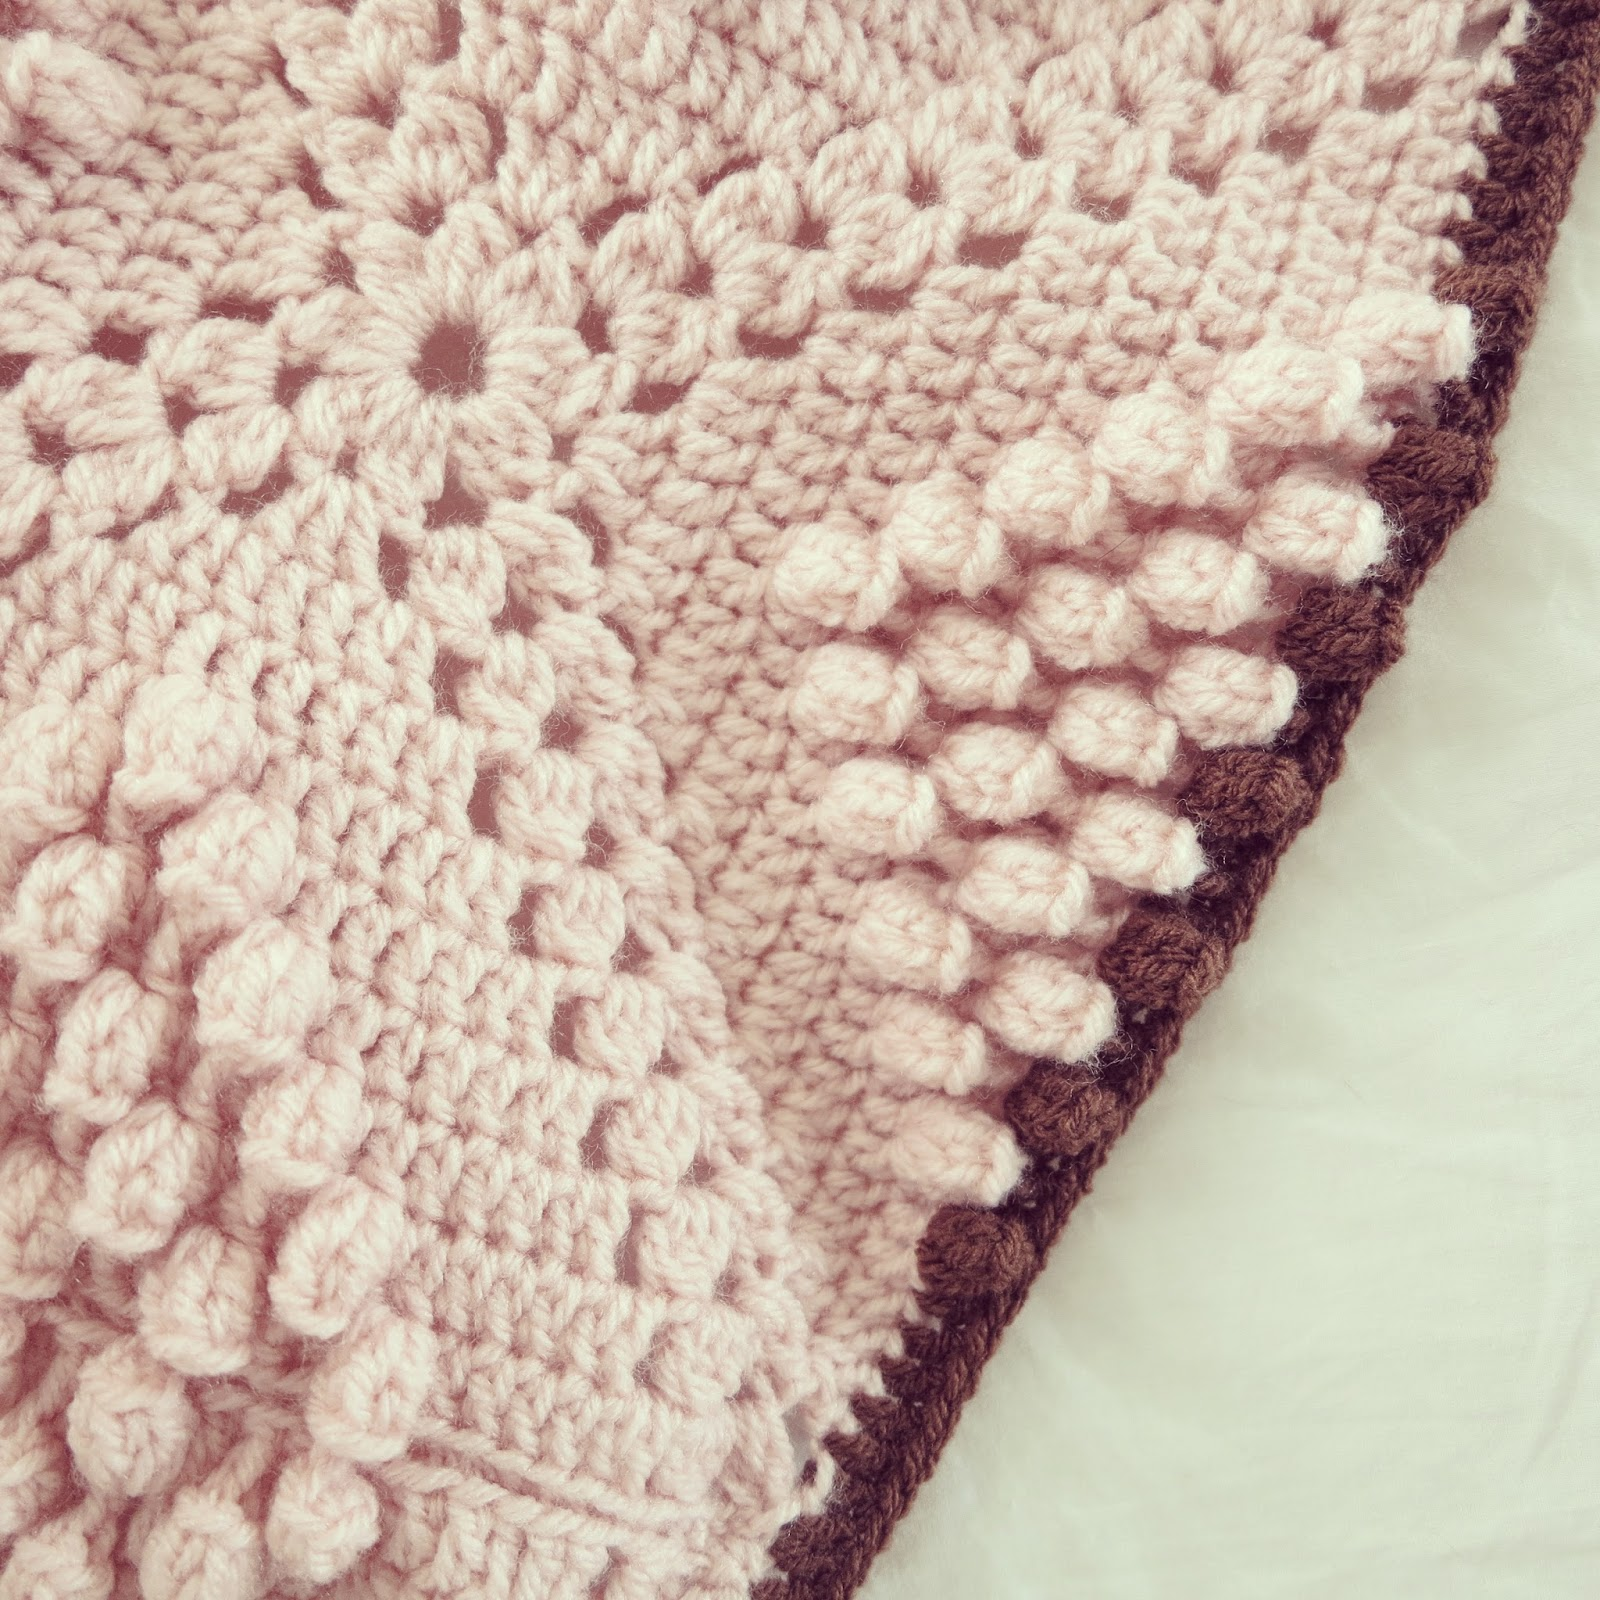 Free Crochet Popcorn Baby Blanket Pattern : crochet baby blanket a free pattern for an easy crocheted ...